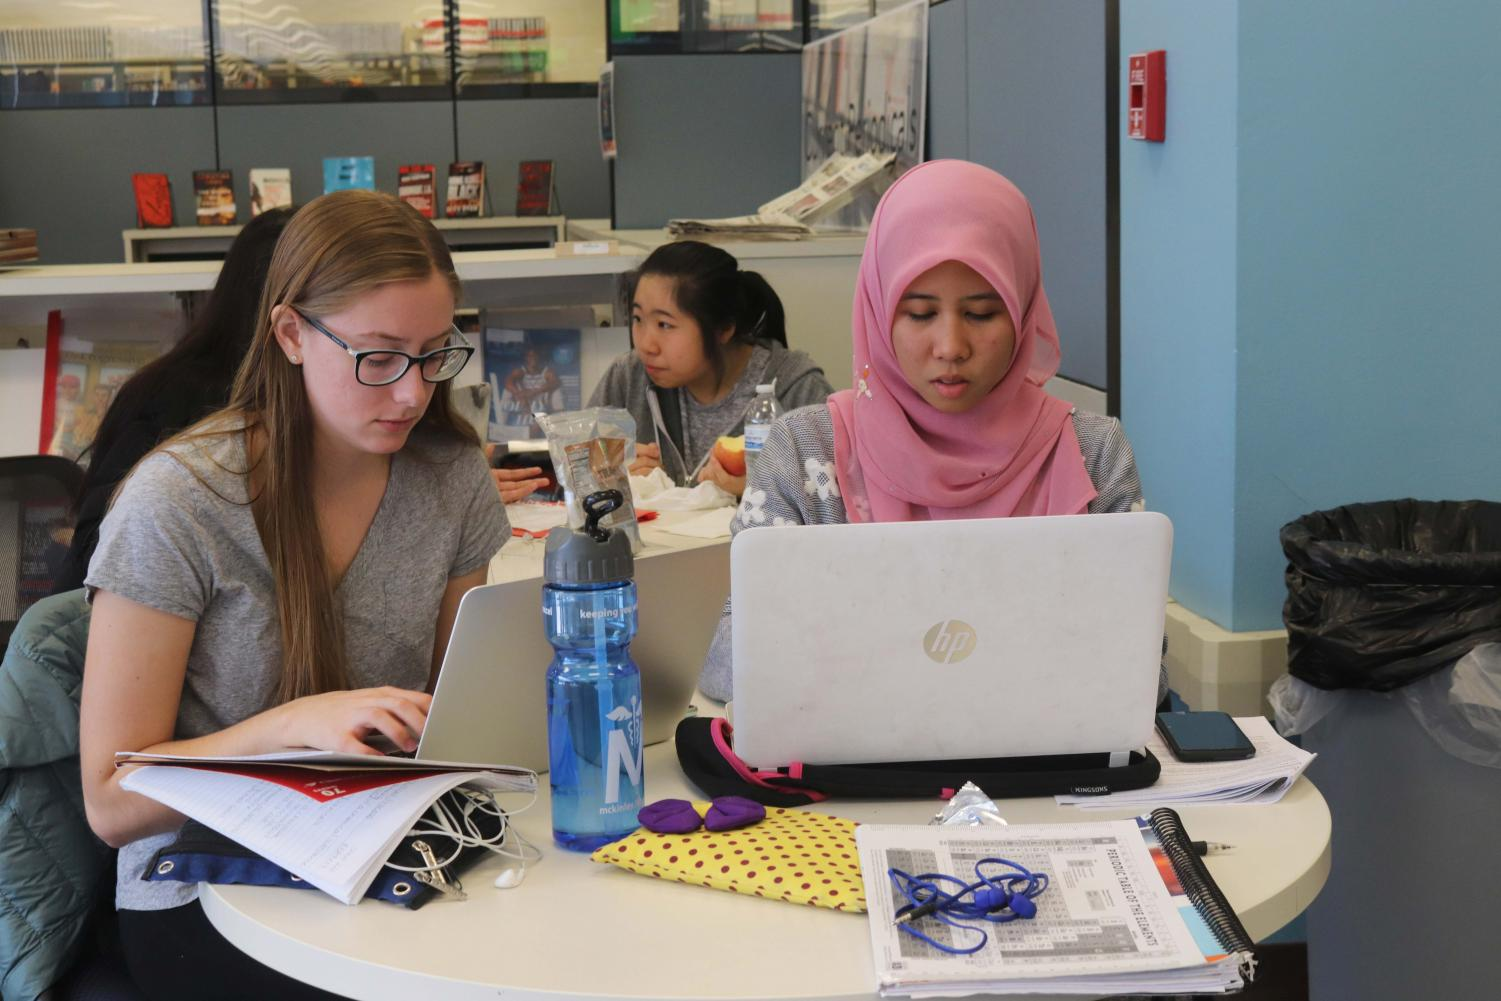 Sophomores Eva Bucke and Hazirah Muhamad work on a project together at the Undergraduate Library. Group projects can be beneficial because they allow students to learn how to work together.